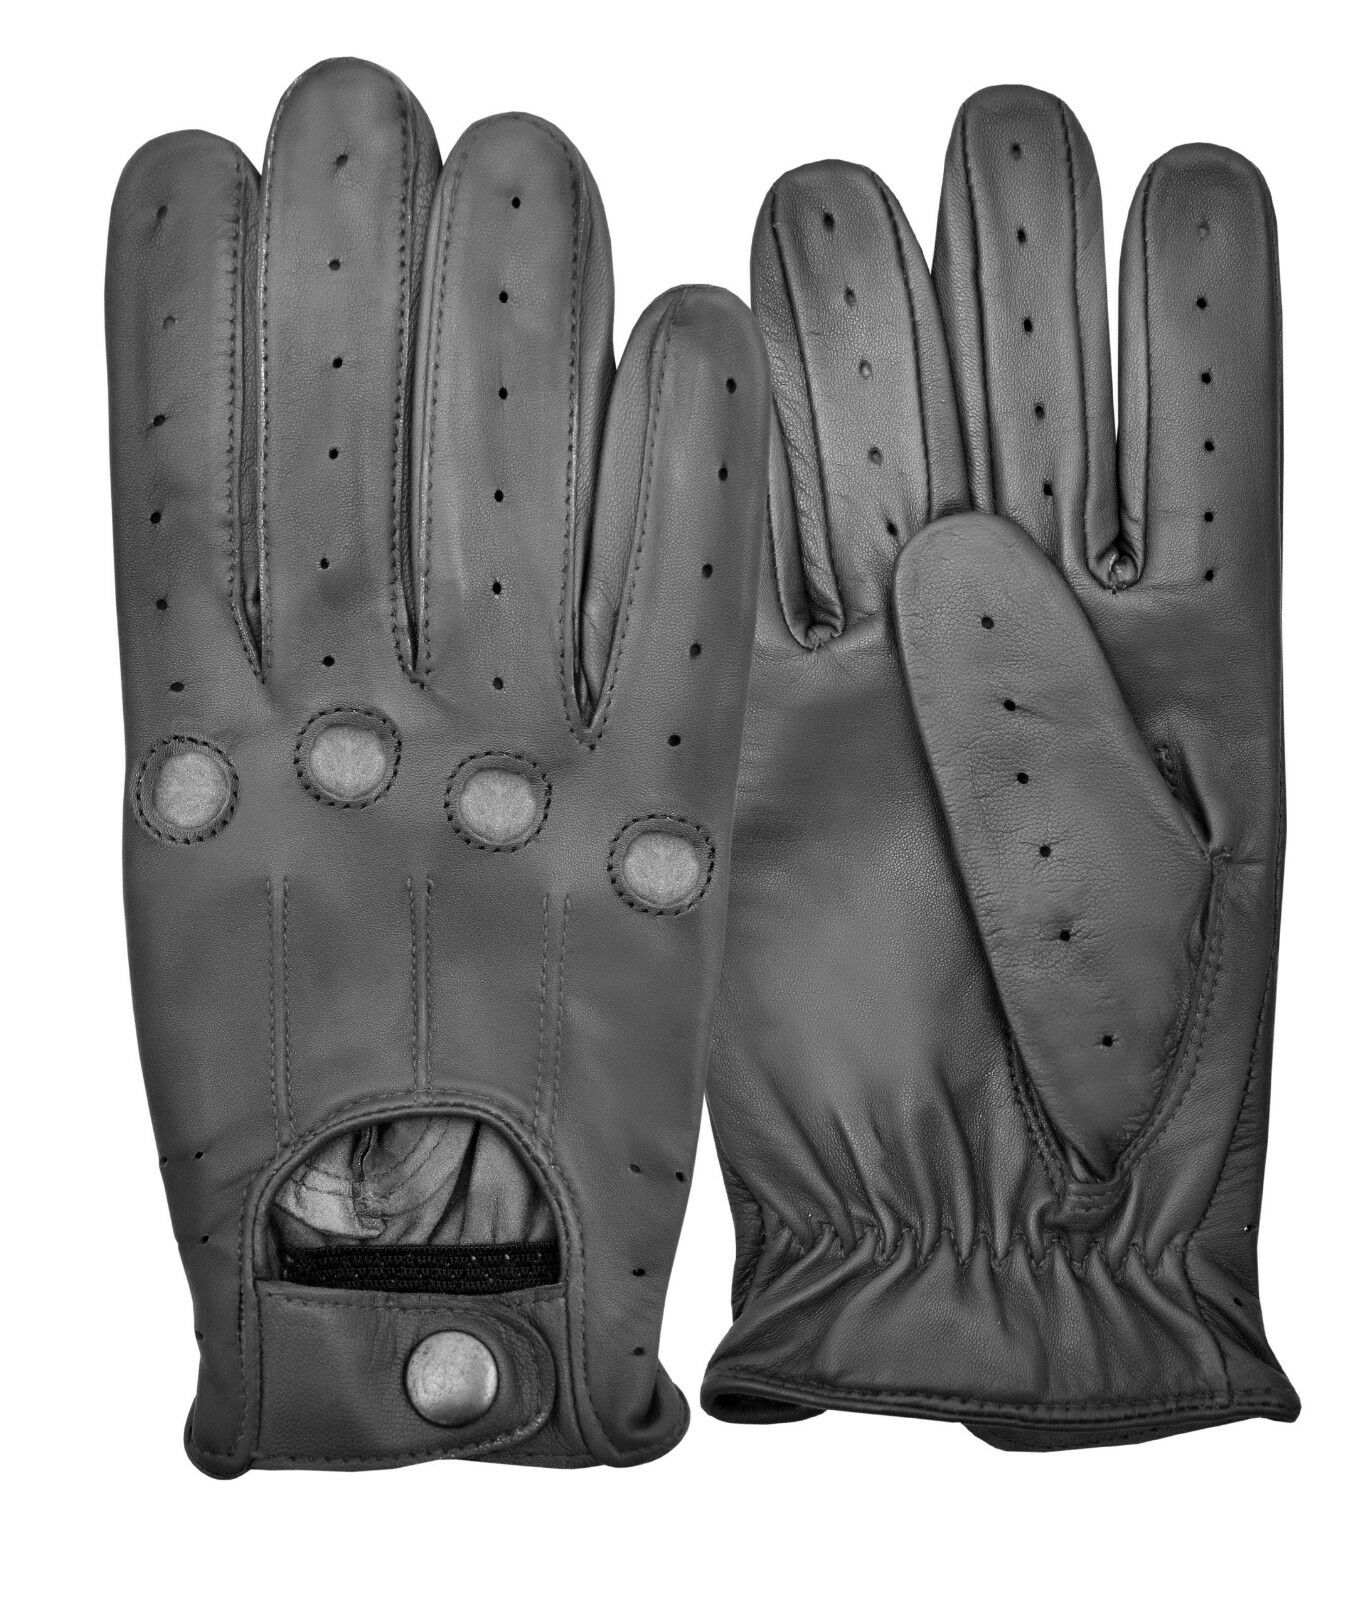 New Driving Gloves Sheep Nappa Leather Button Fastened Vintage Traditional Retro